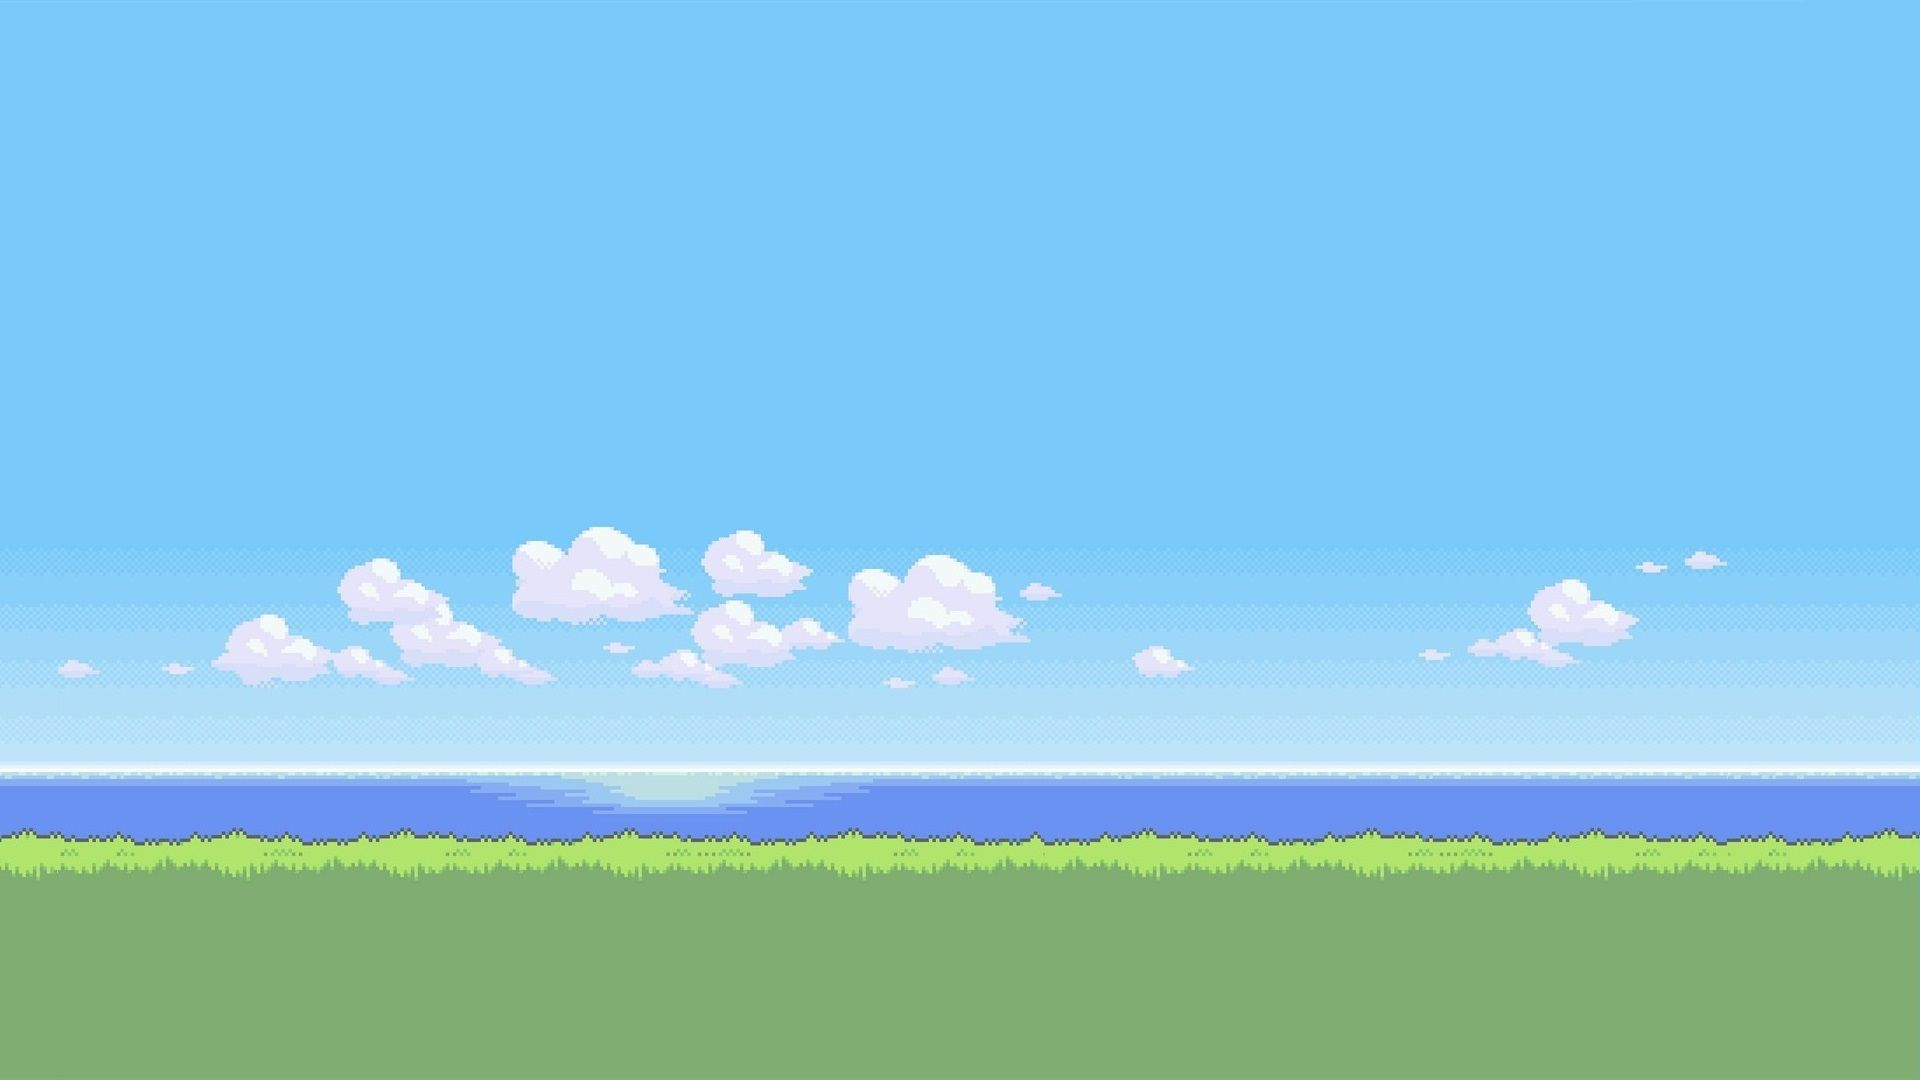 1920x1080 Sample In 2020 Pixel Art Desktop Wallpapers Backgrounds Landscape